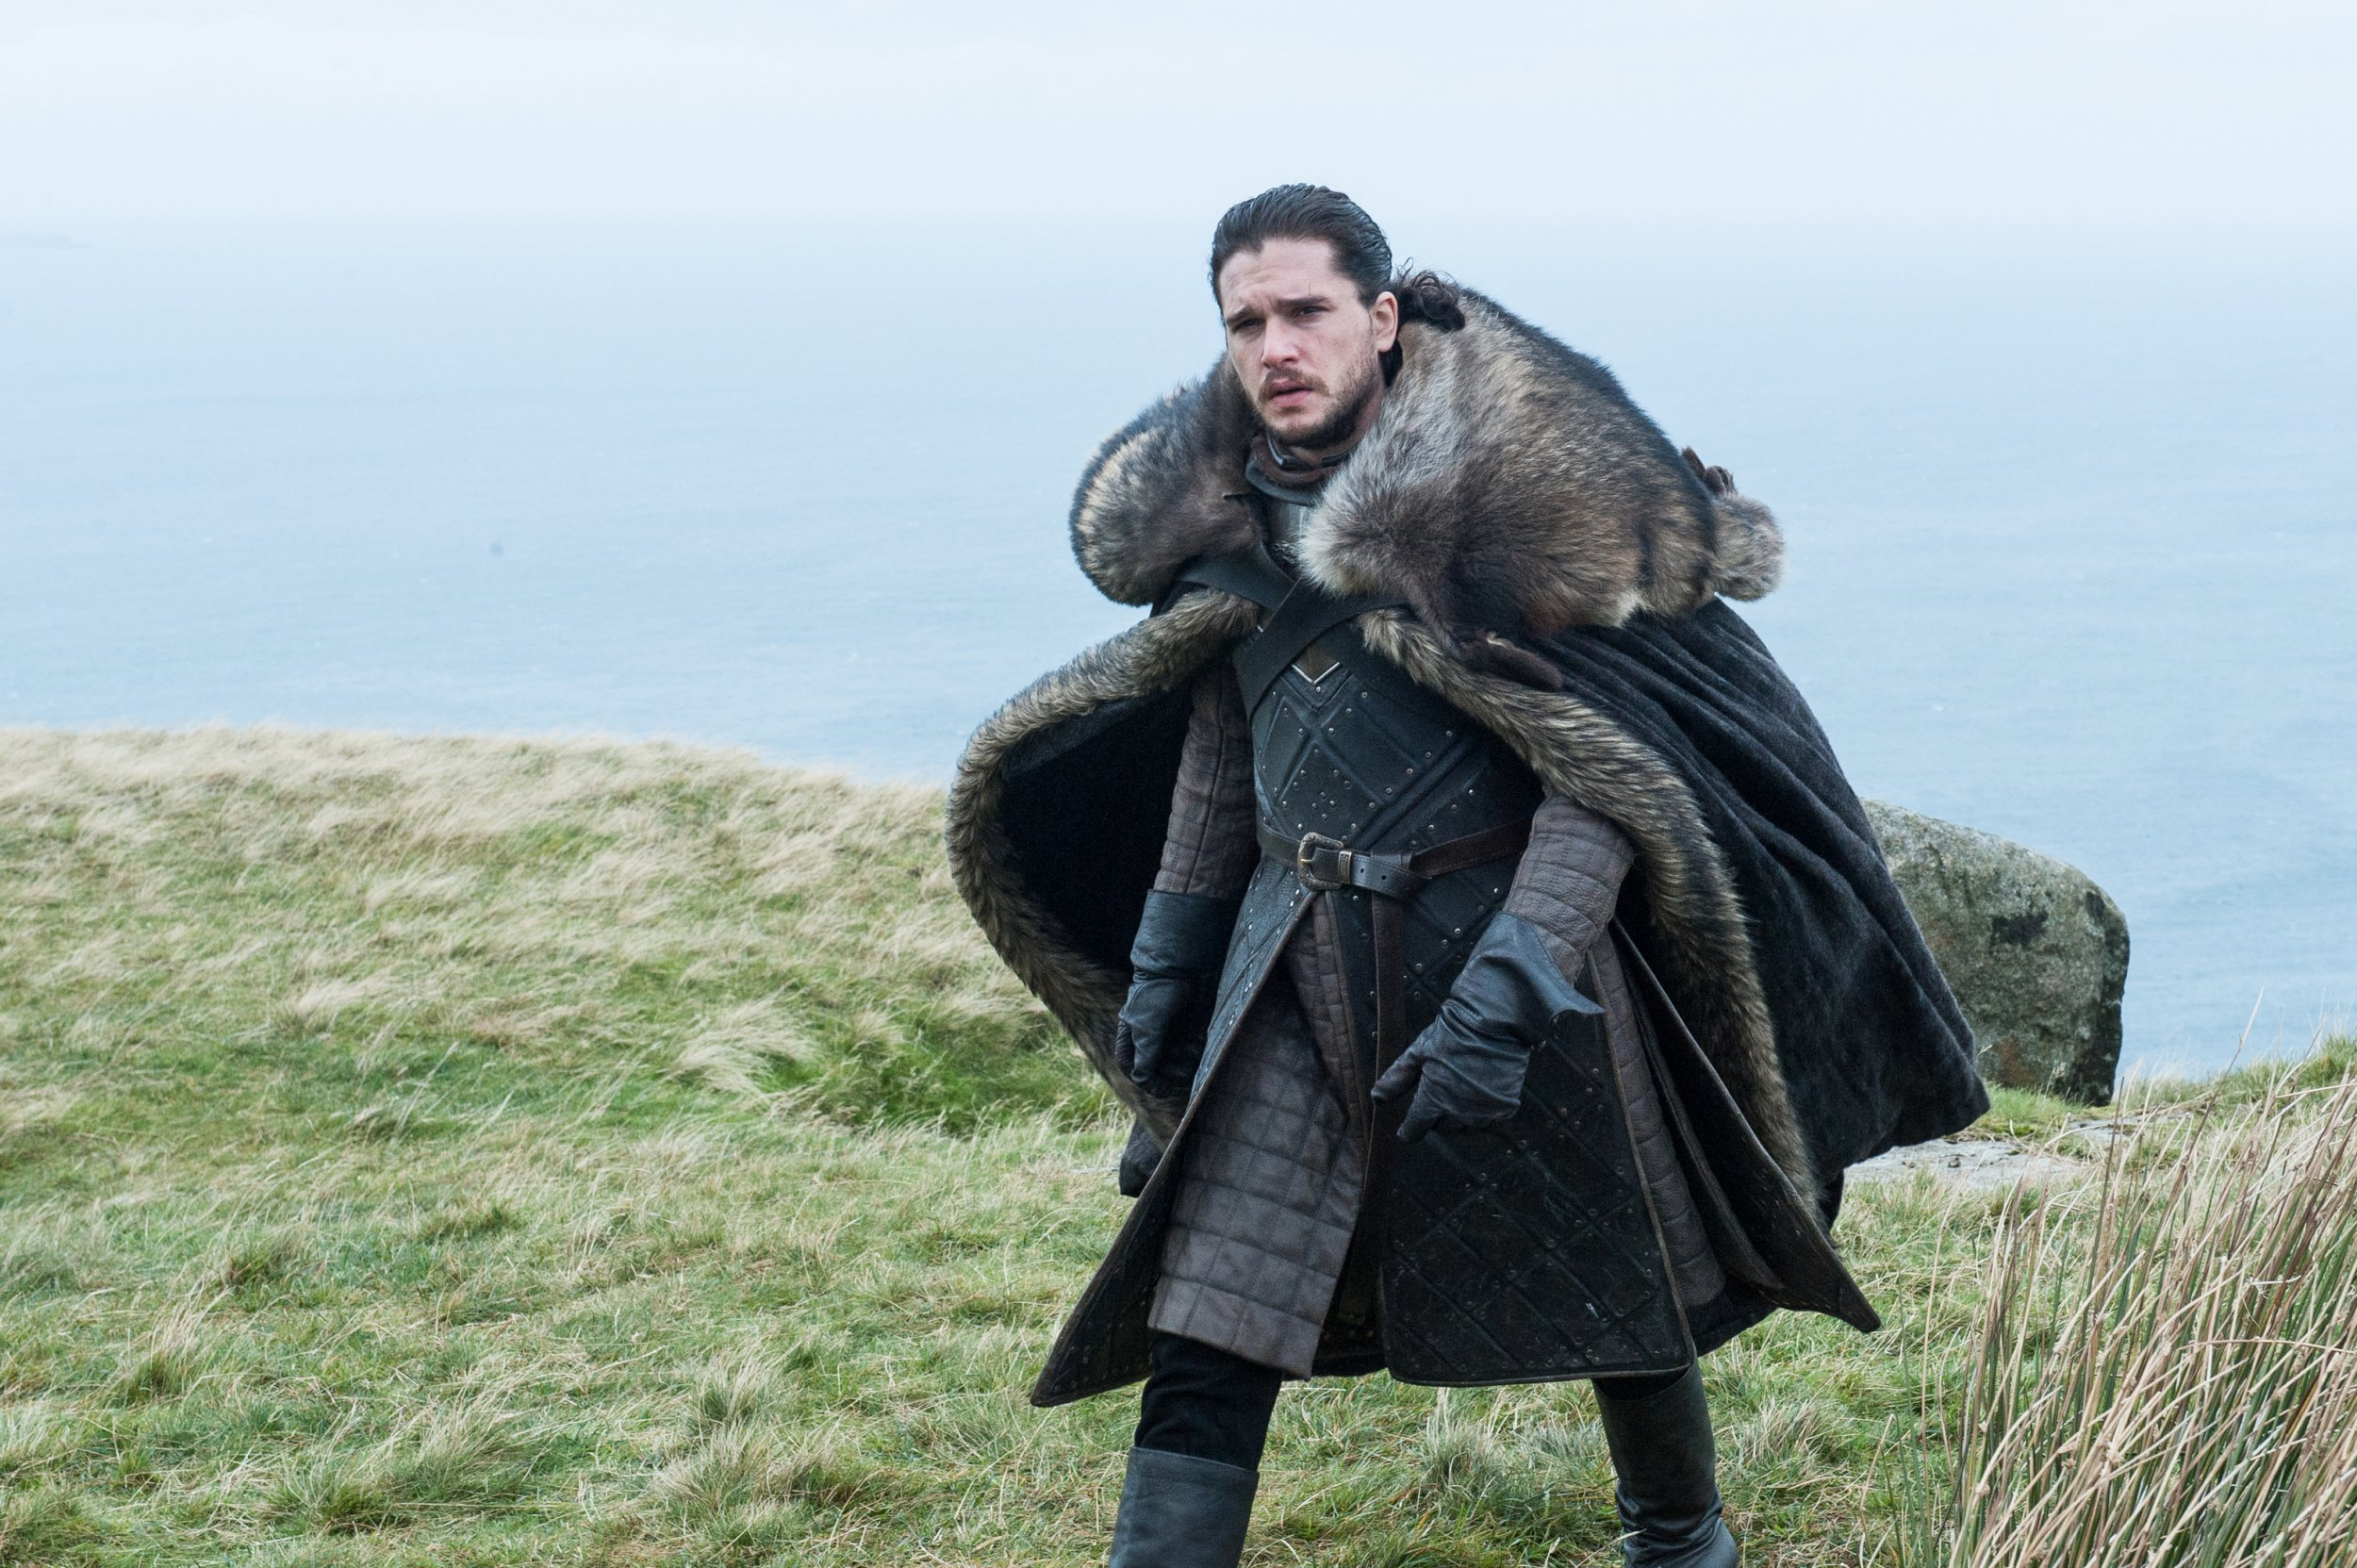 Game of Thrones' Kit Harington was the last one to find out the ending